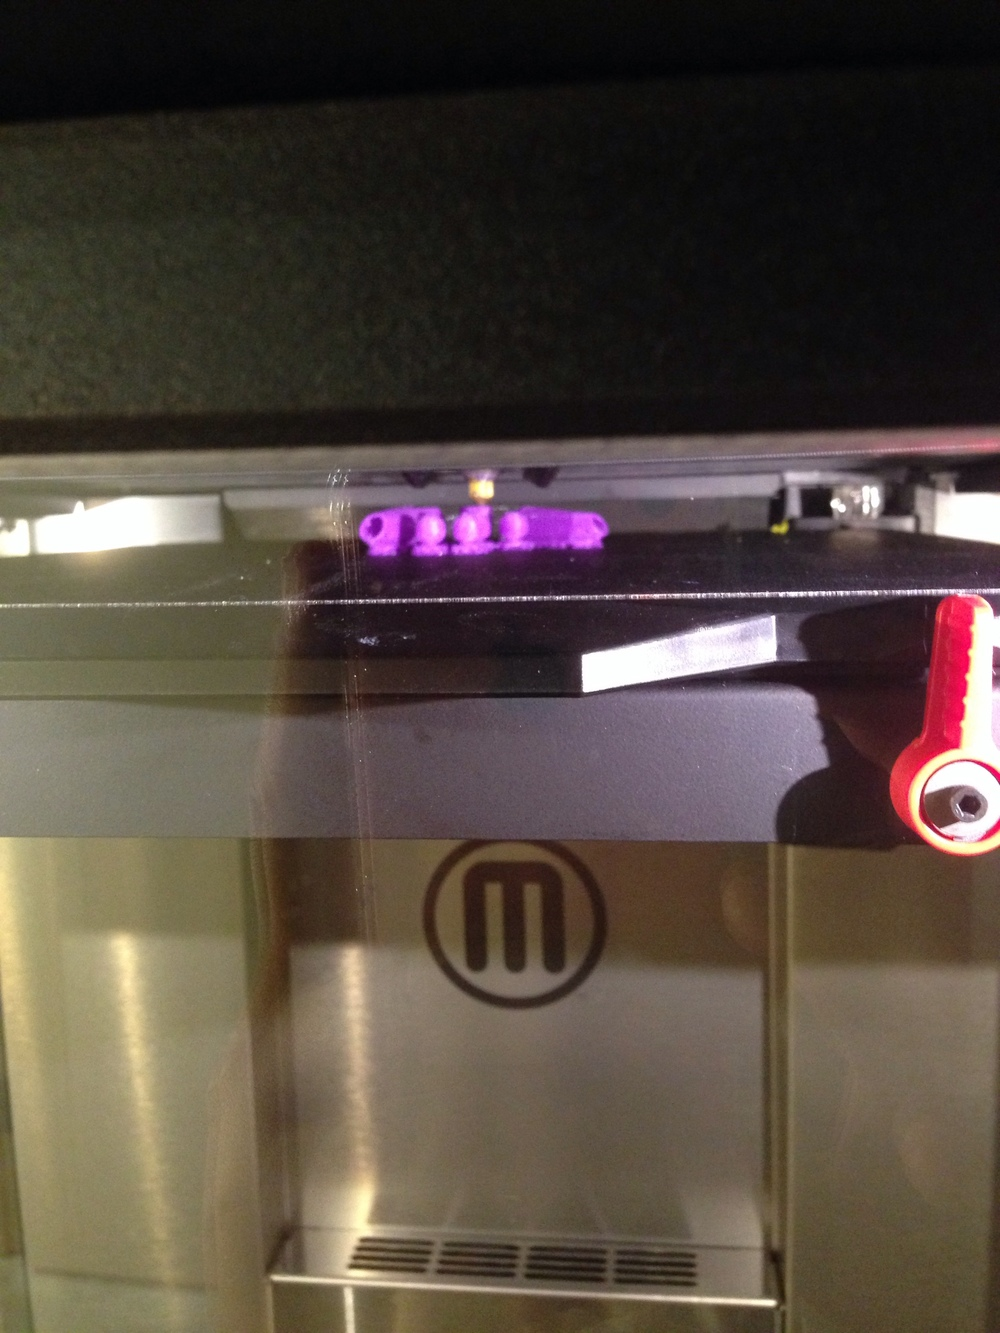 Printing on the Makerbot Z18.